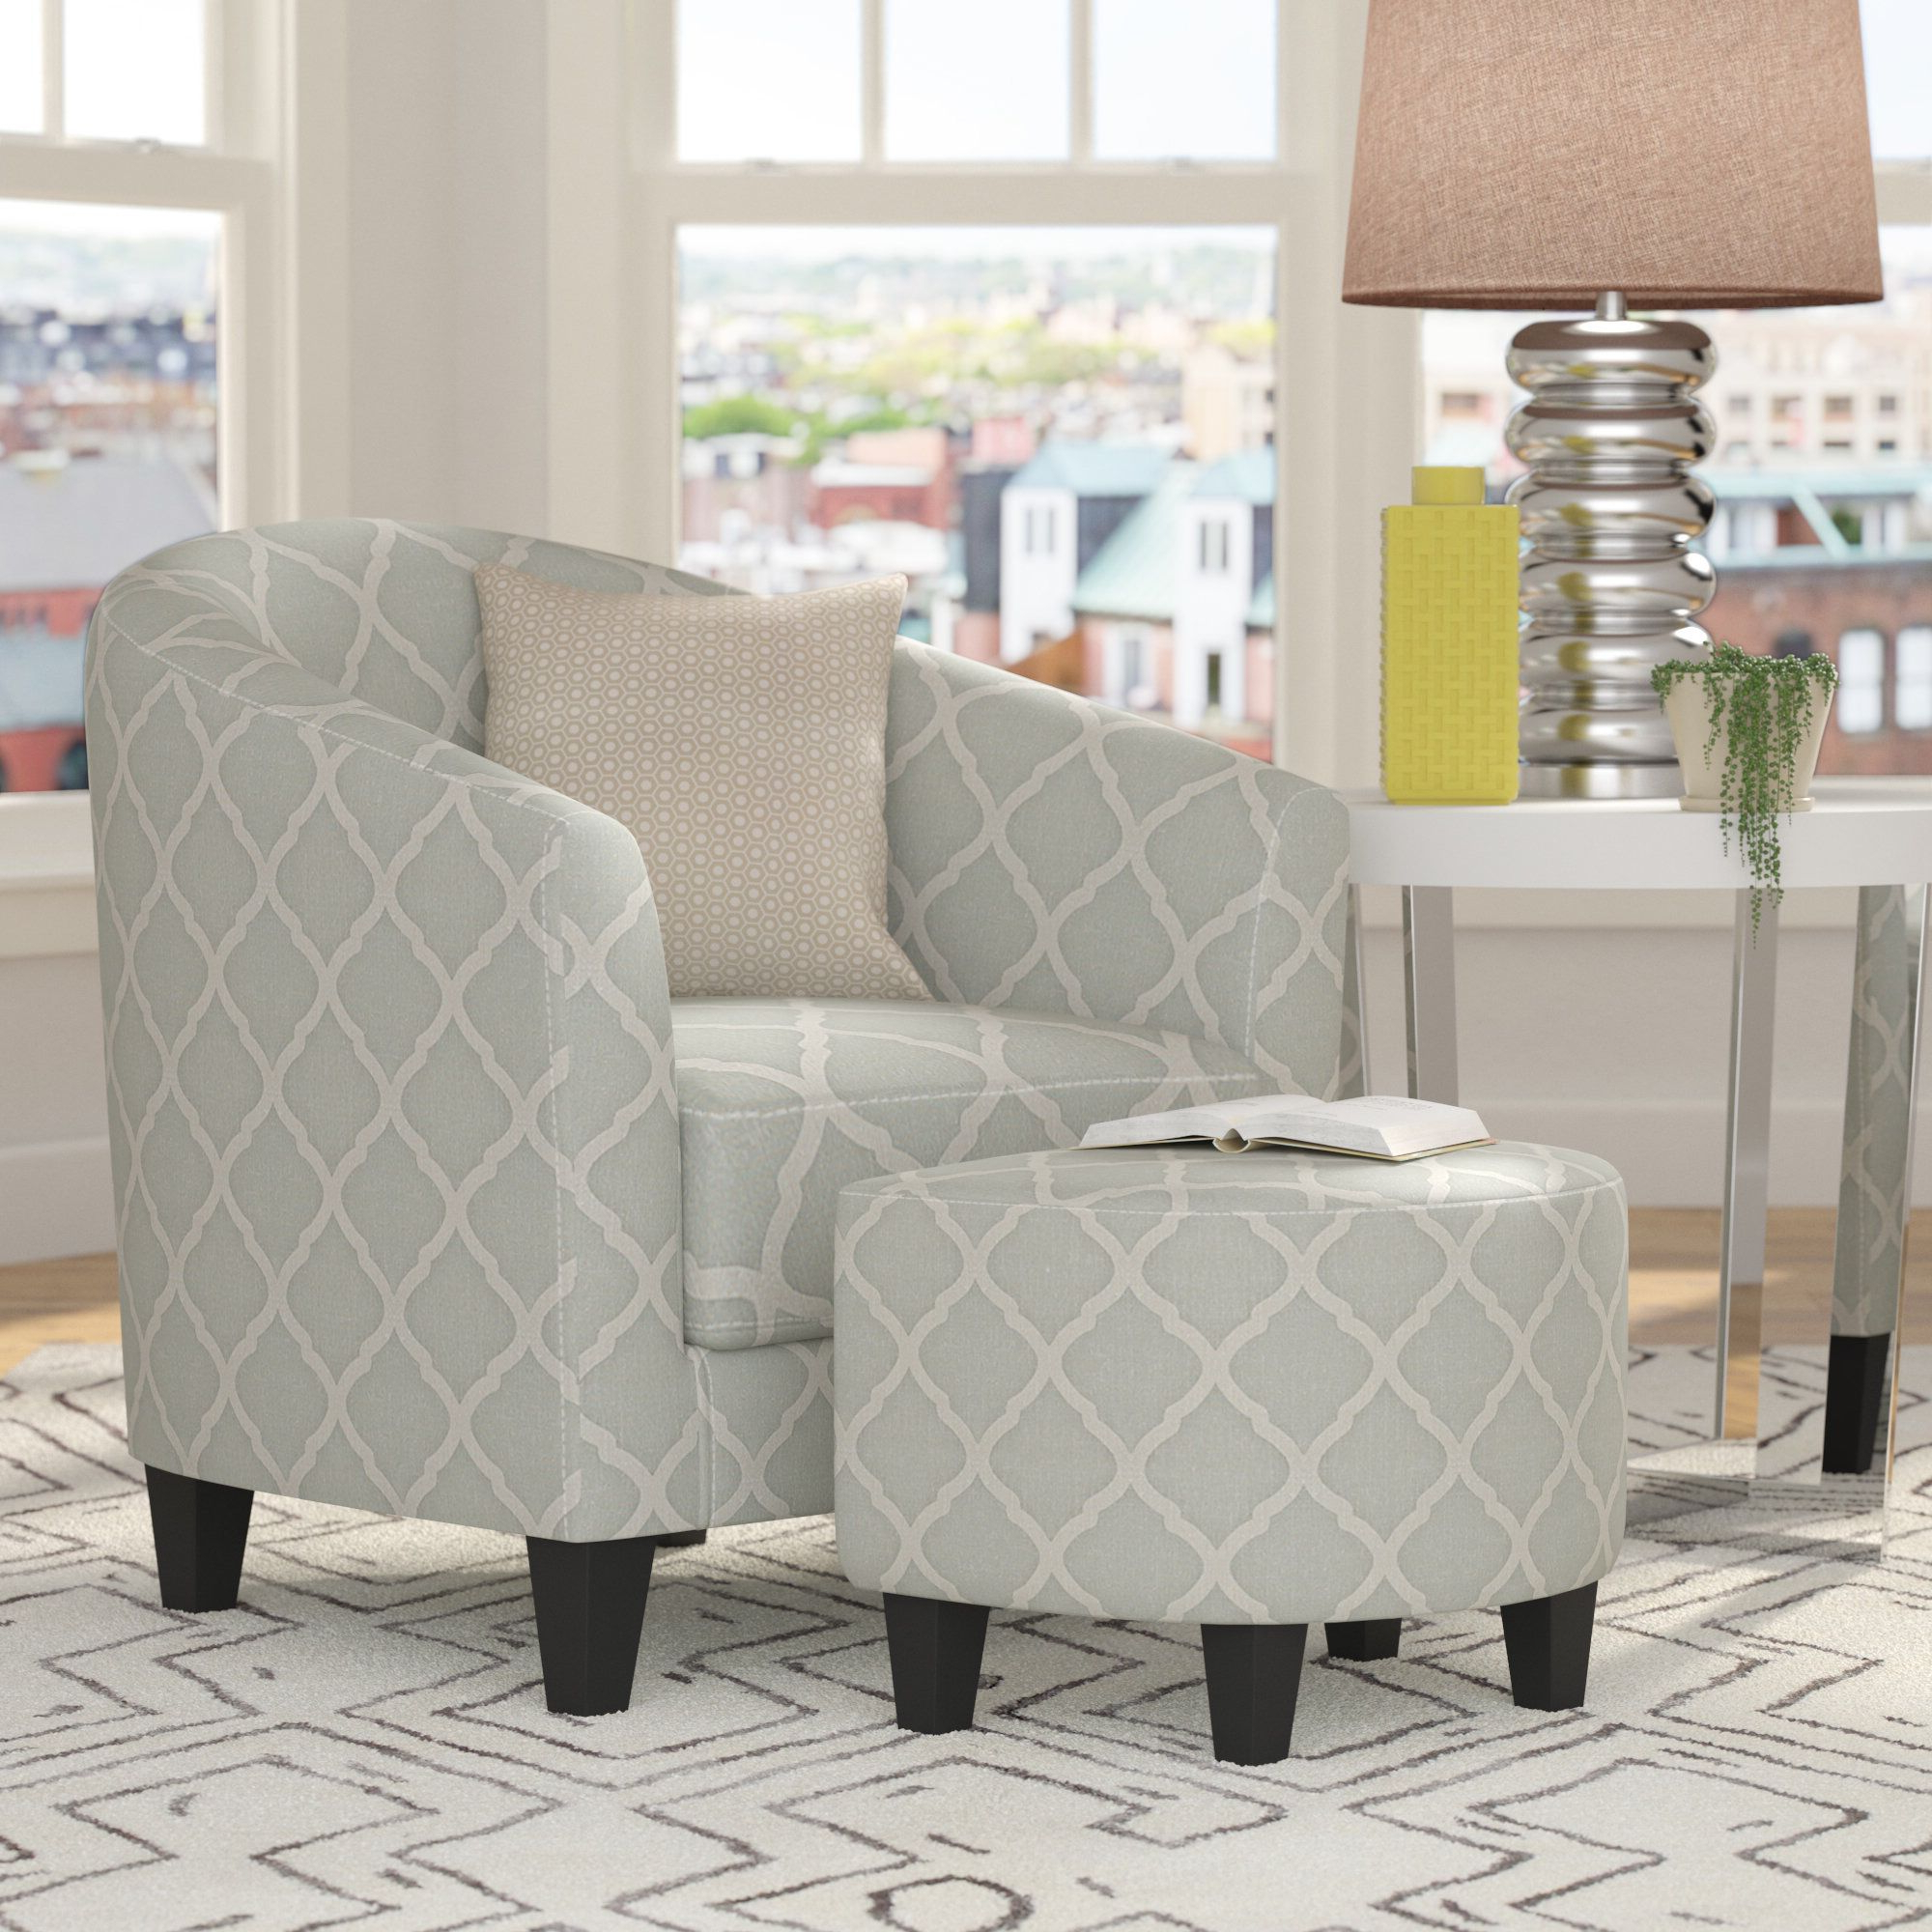 Widely Used Pin On <3 Apartment Decorating With Regard To Wainfleet Armchairs (View 11 of 20)